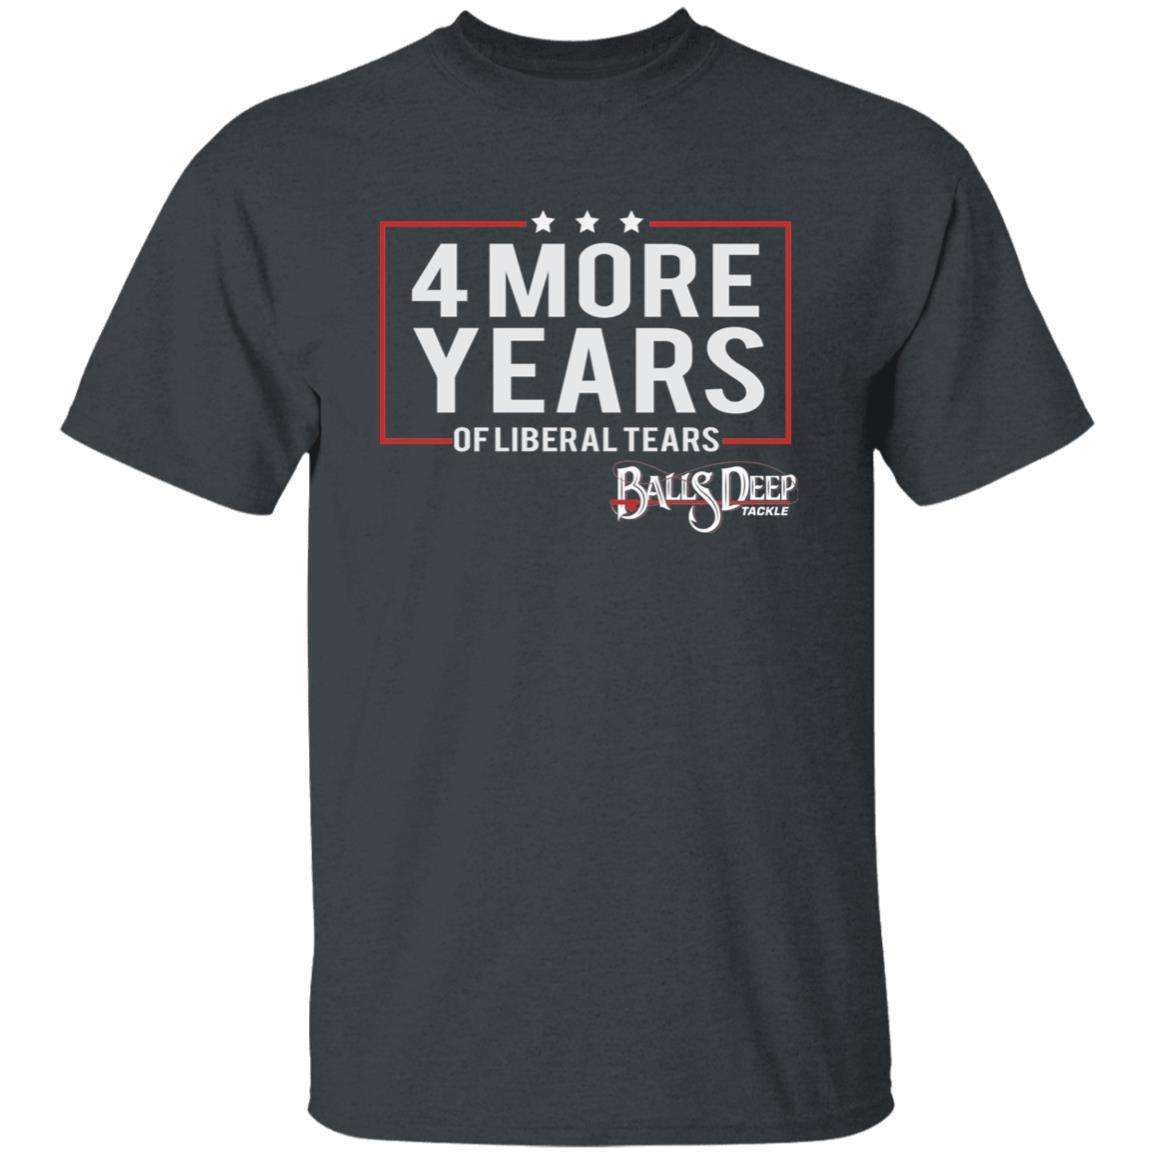 4 More Years of Liberal Tears